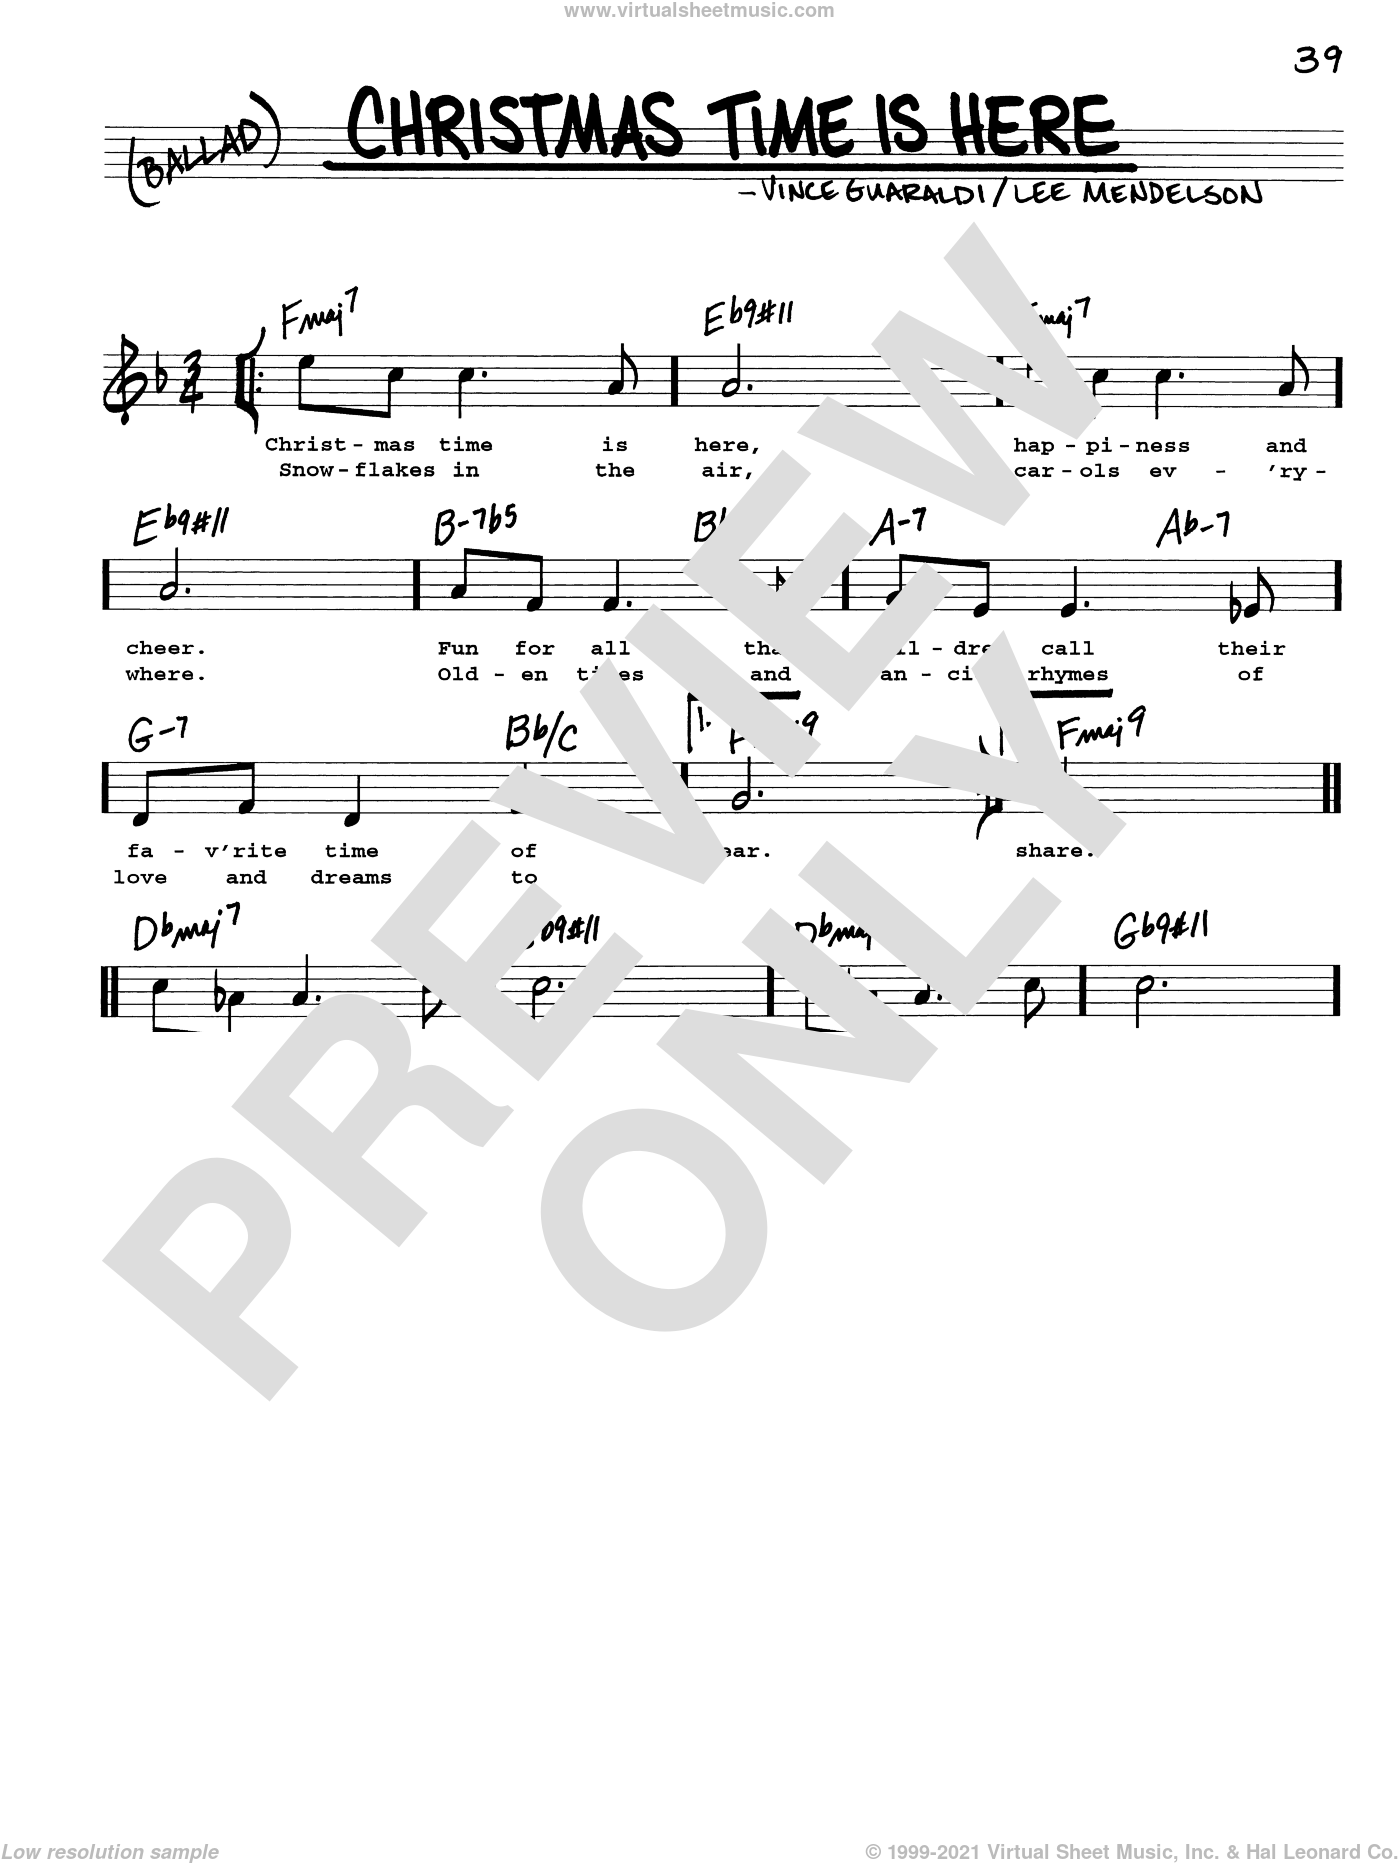 Christmas Time Is Here sheet music for voice and other instruments (real book with lyrics) by Vince Guaraldi and Lee Mendelson, intermediate skill level